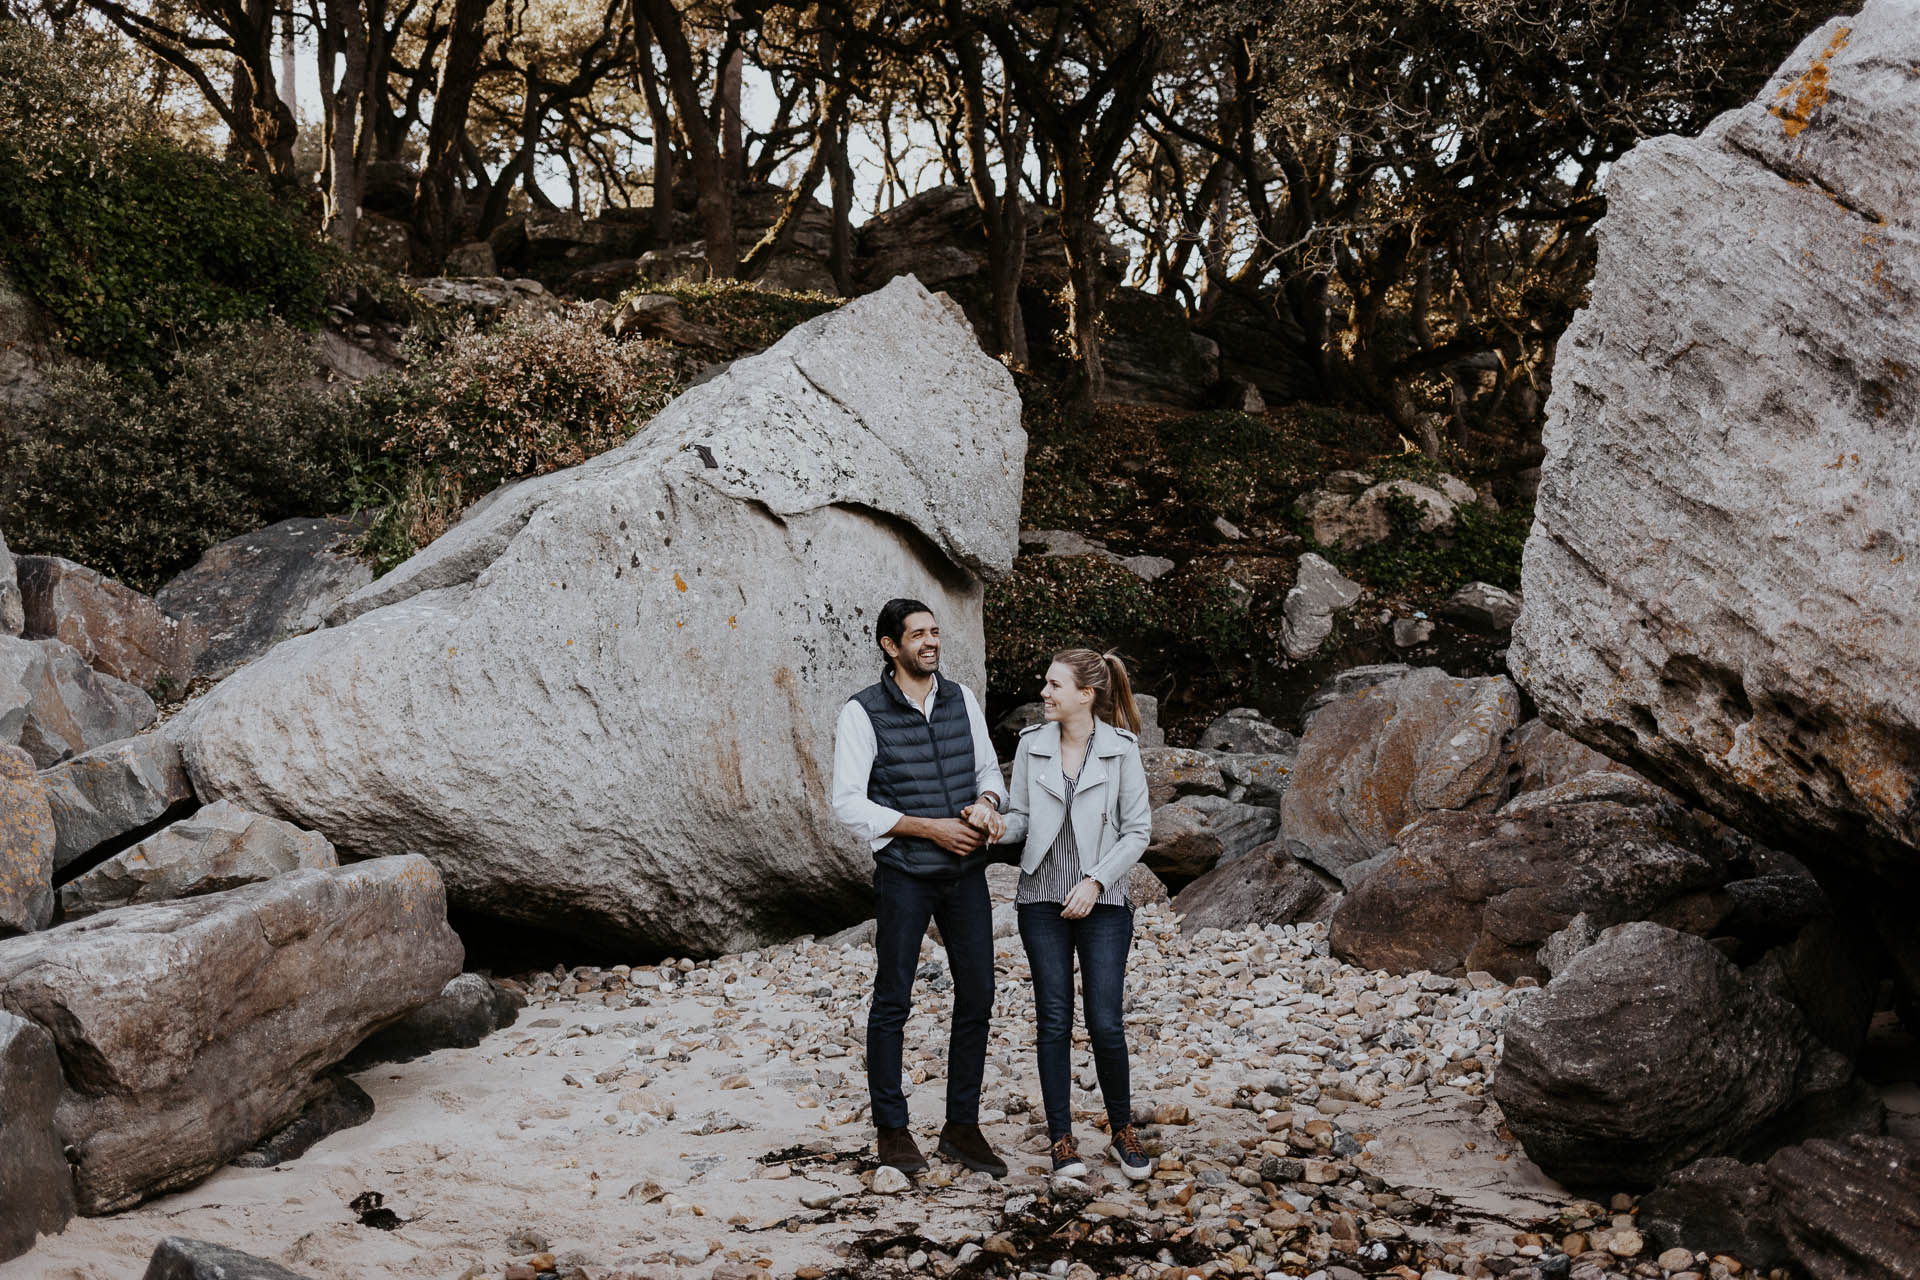 séance_engagement_noirmoutier_flavie_nelly_photographe_nantes-4